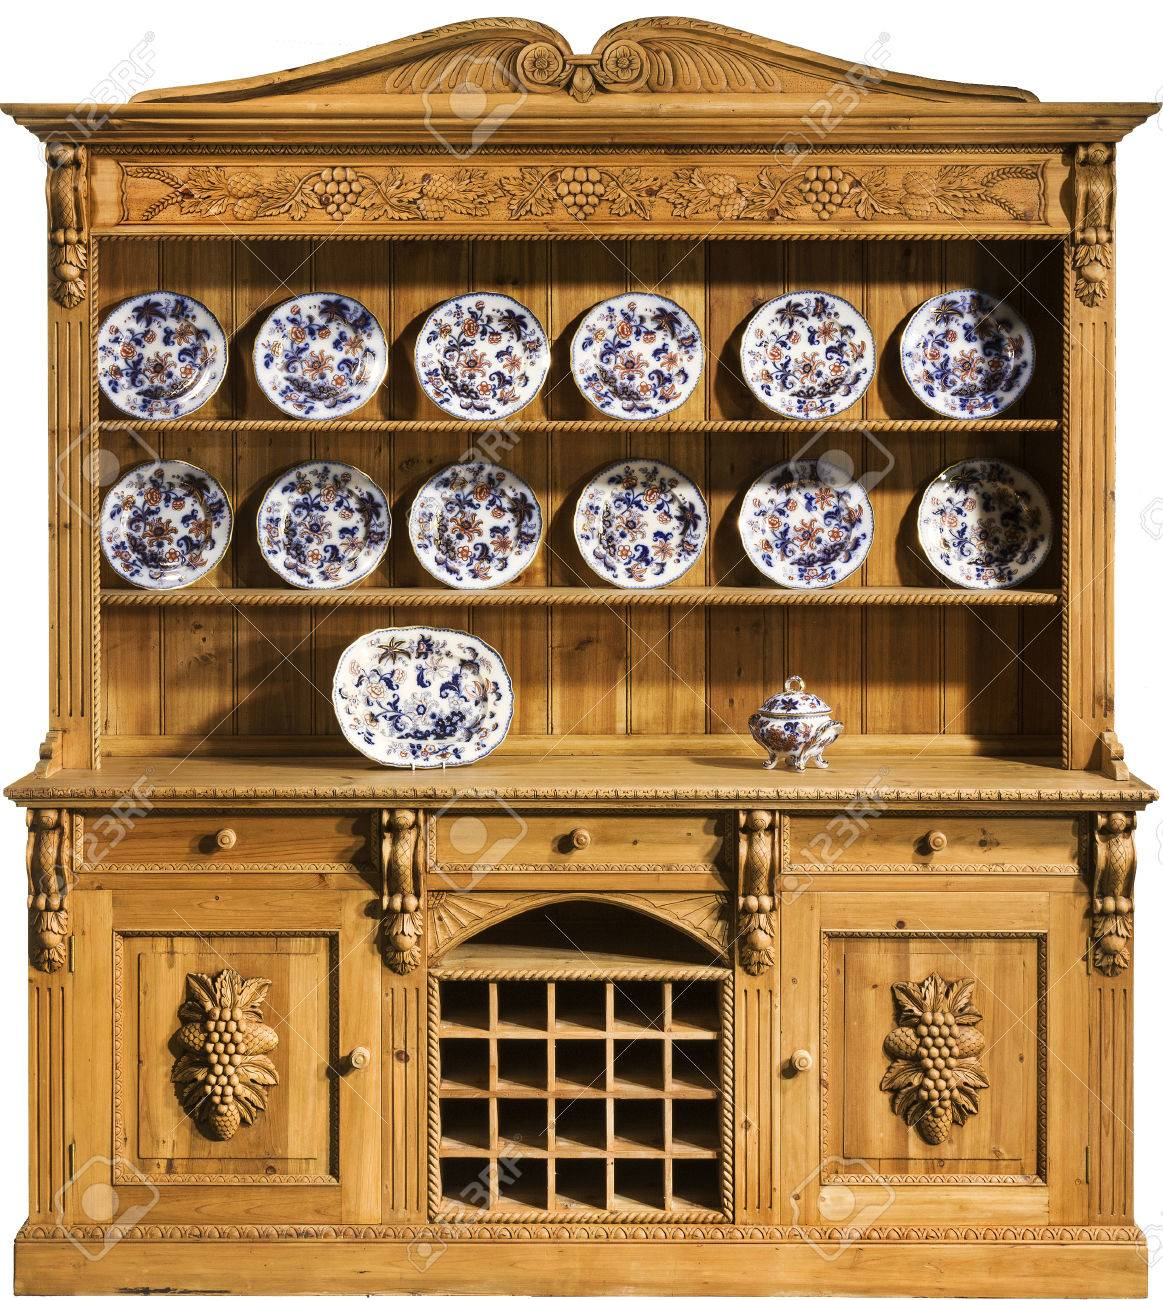 Vintage Antique Pine Kitchen Dresser Heavily Carved Stock Photo Picture And Royalty Free Image Image 41800810